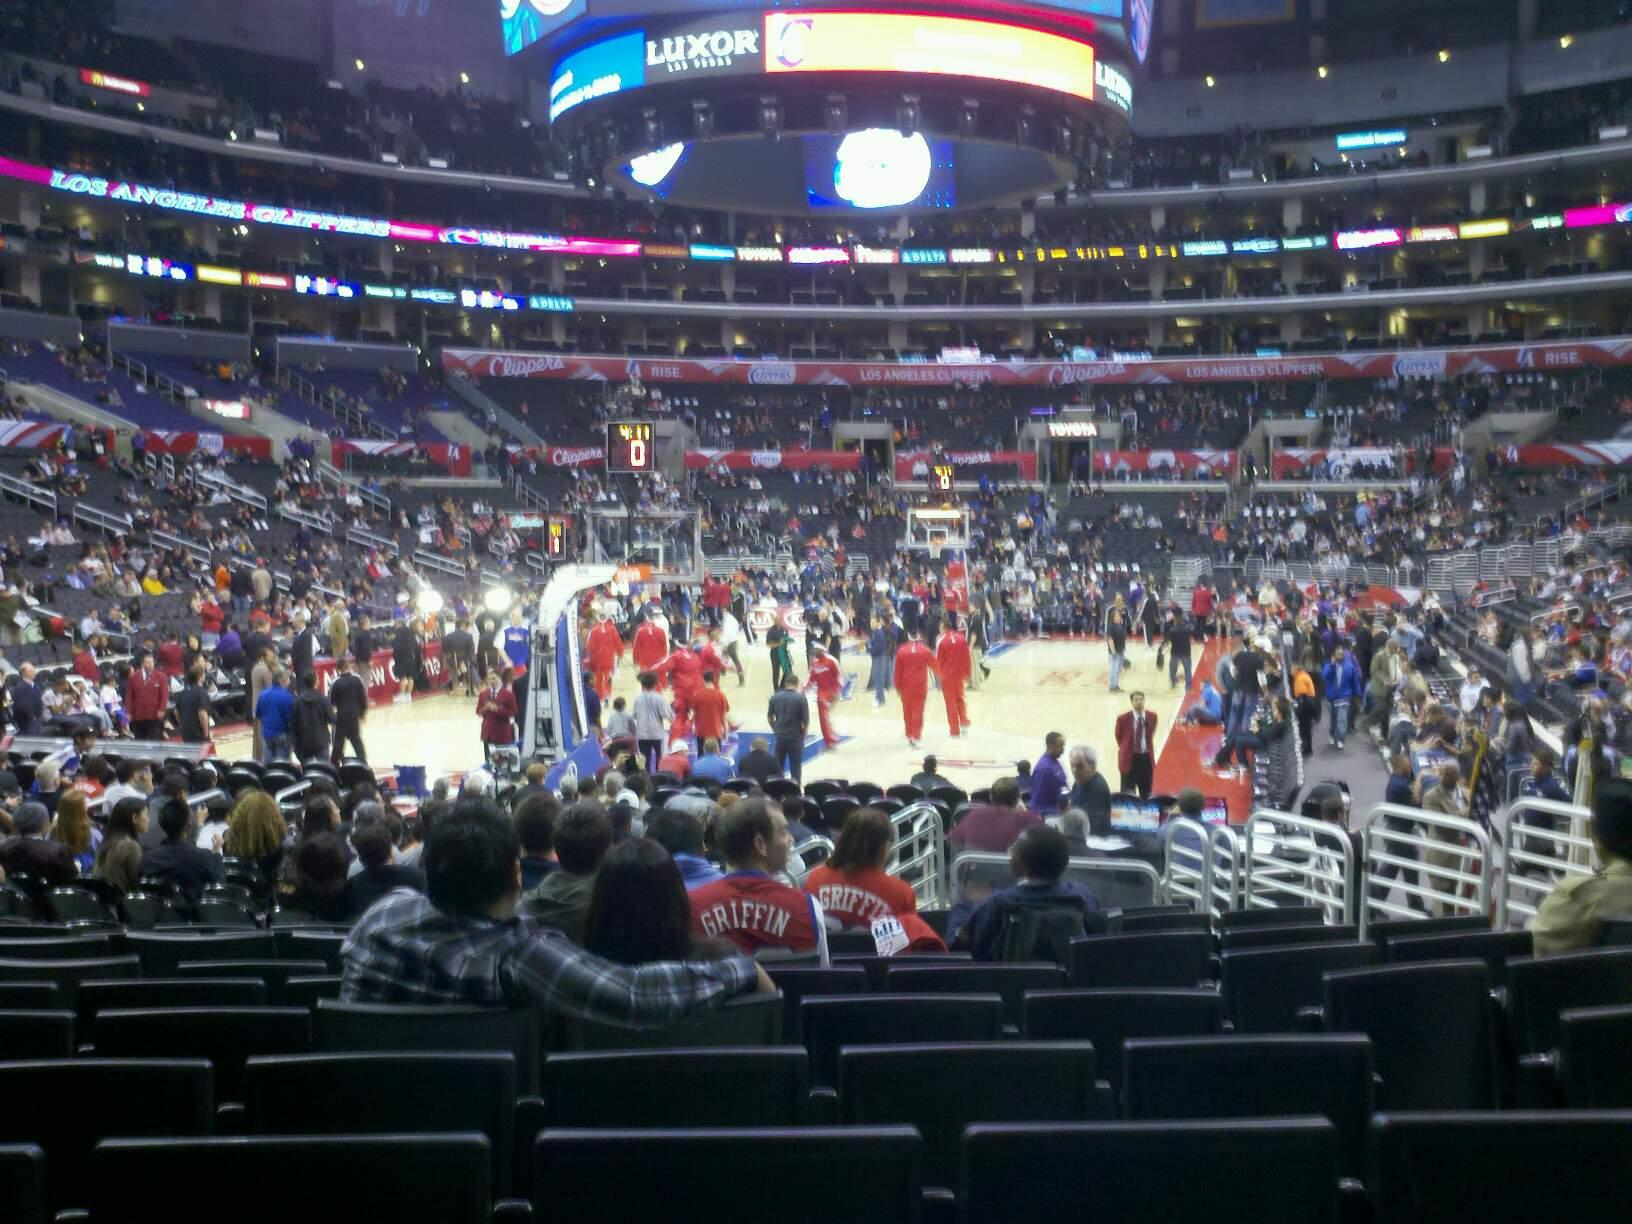 Staples Center Section 115 Row 13 Seat 10